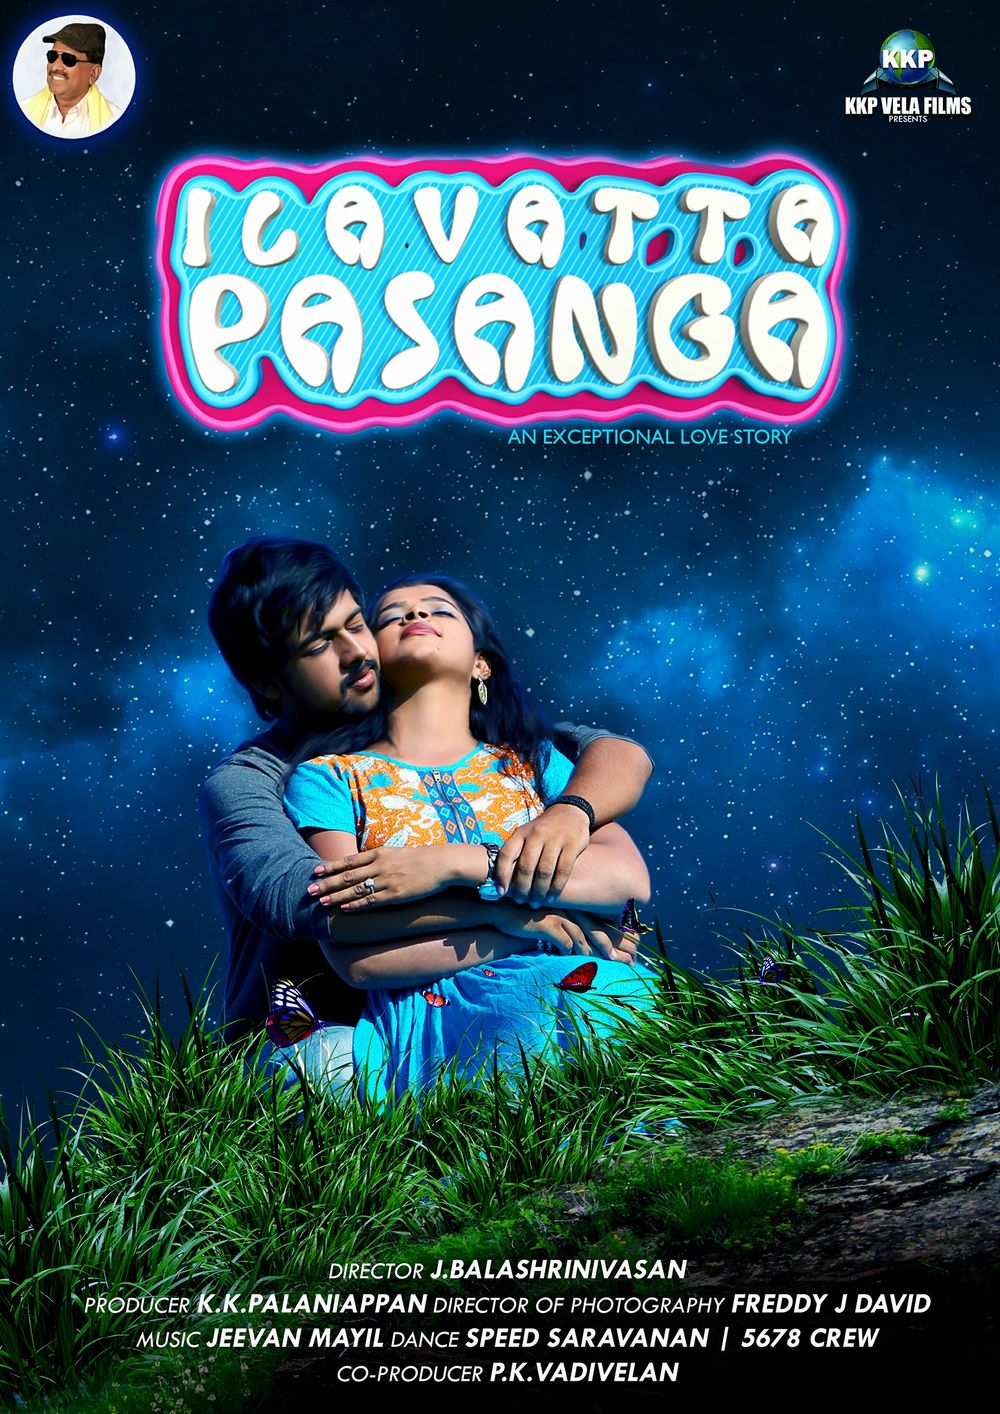 Ilavatta Pasanga Movie Review Tamil Movie Review